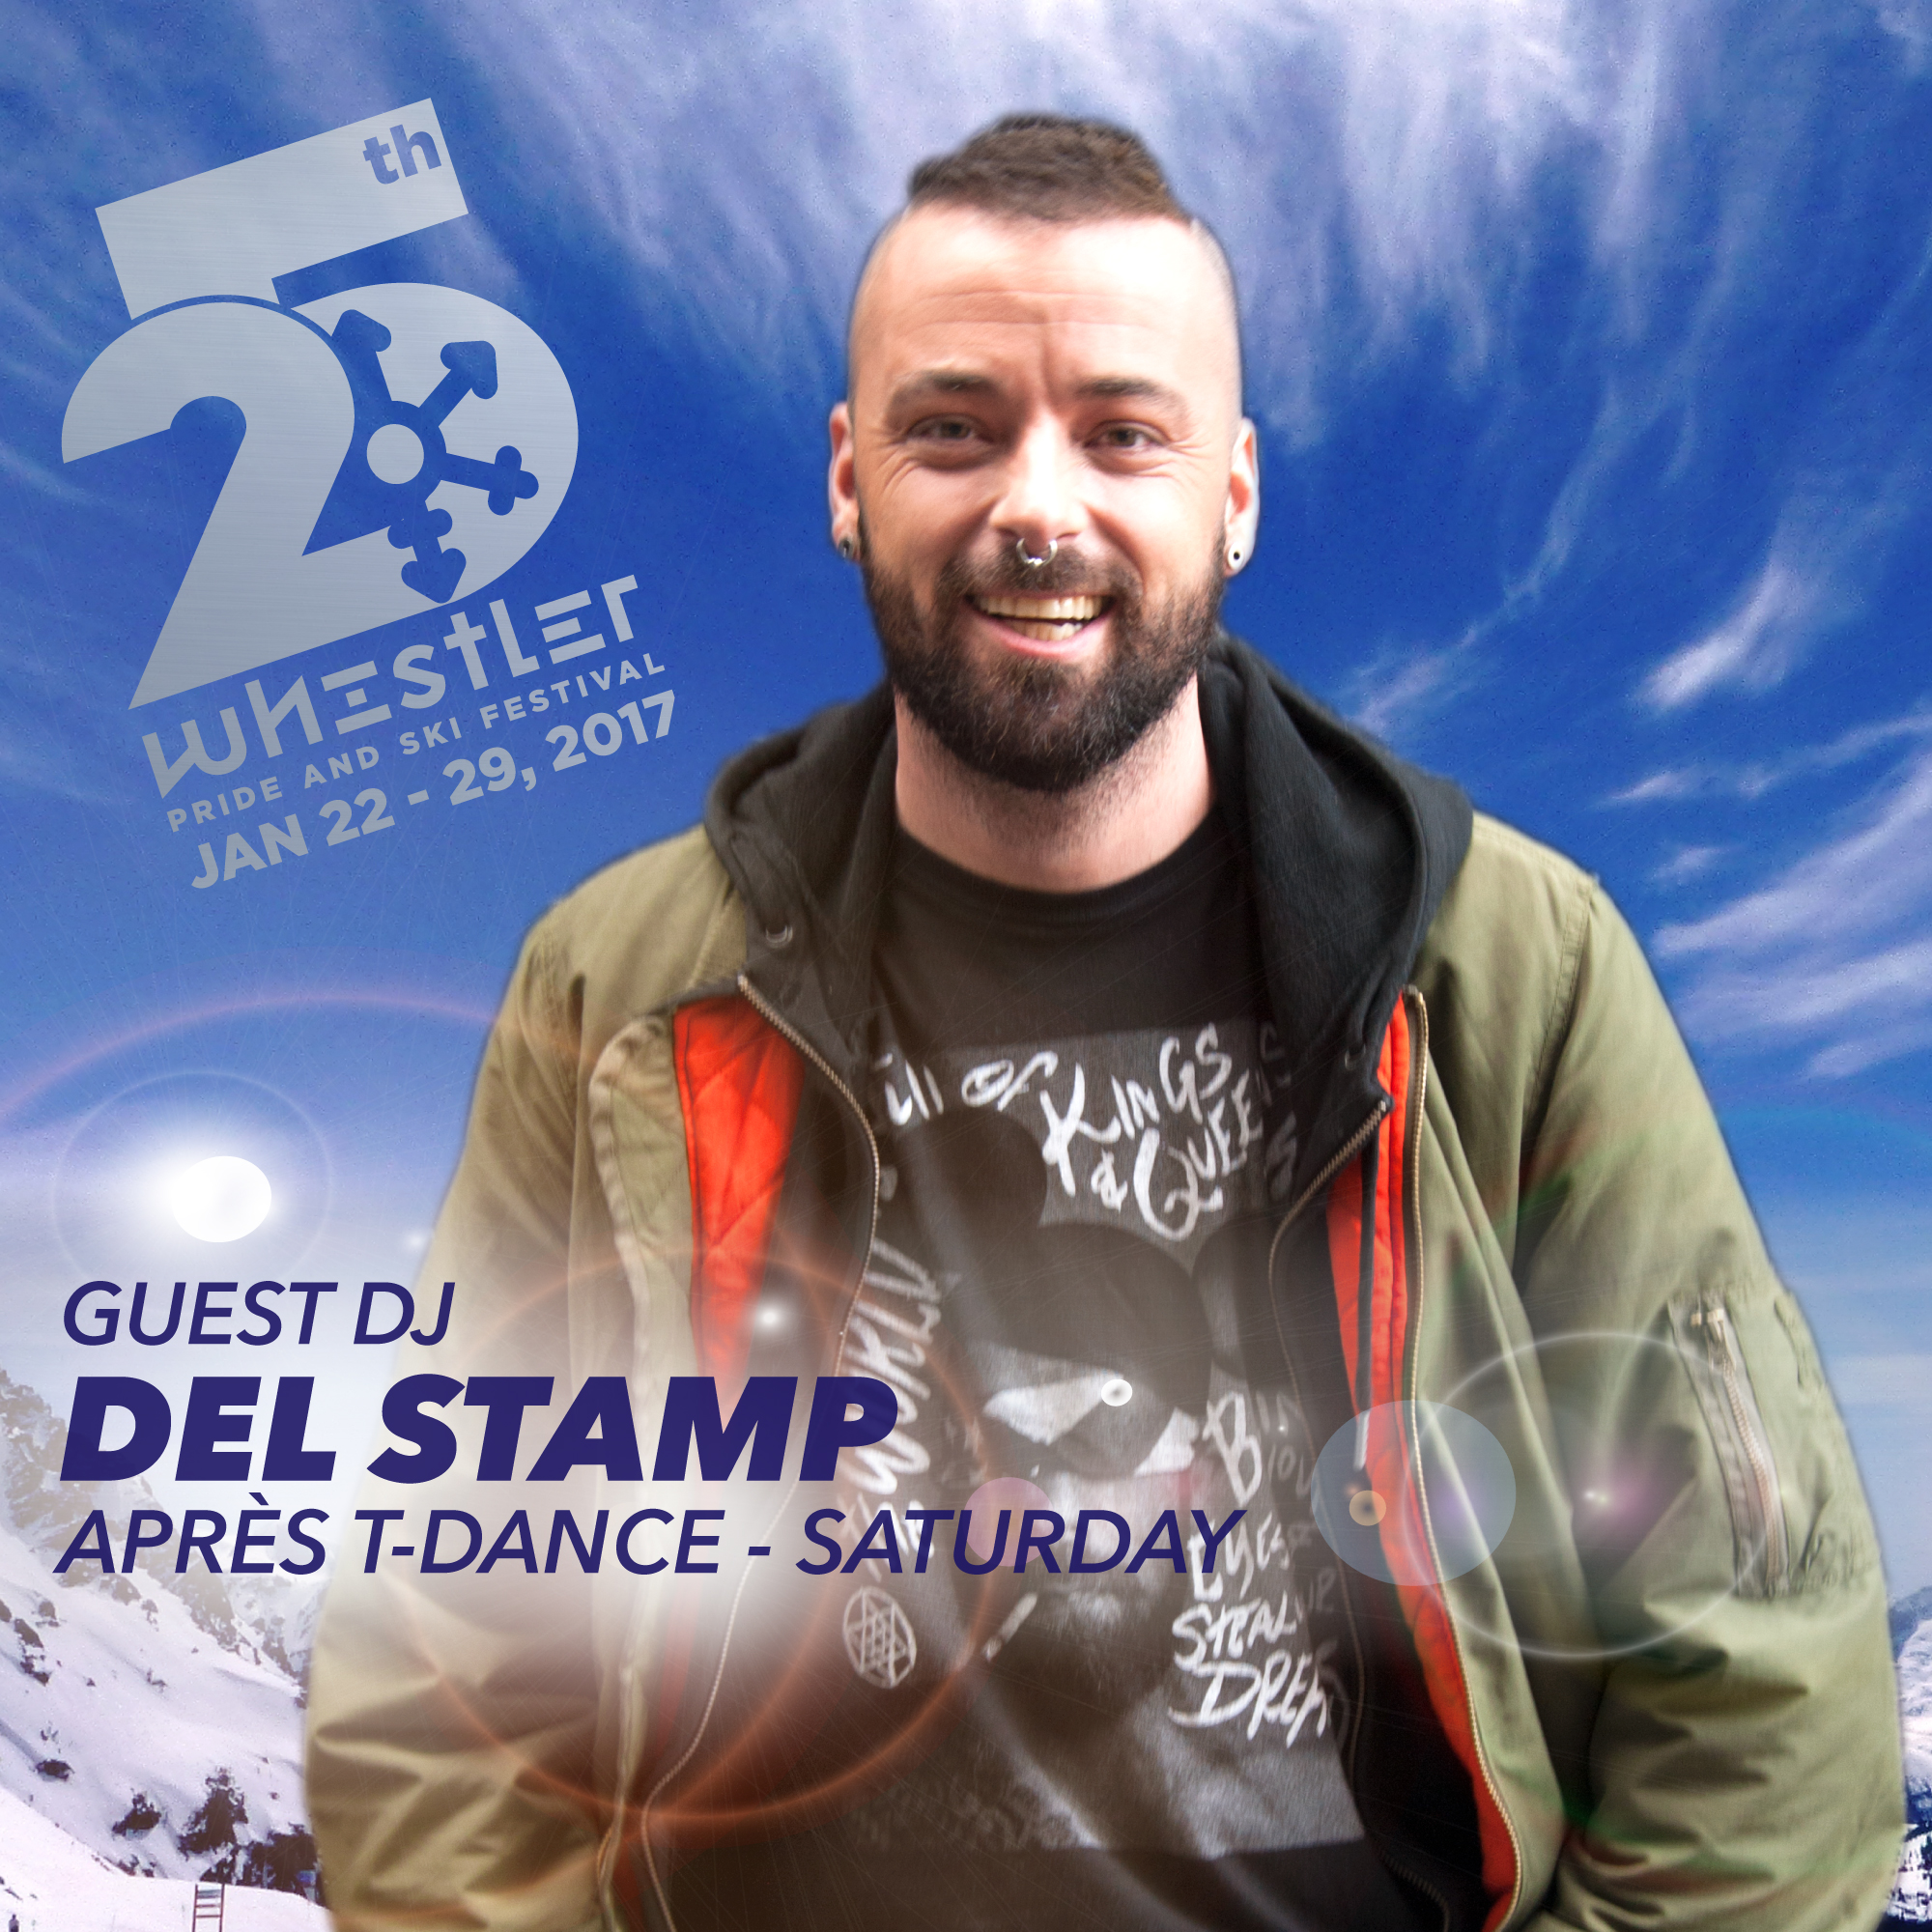 DJ Del Stamp returns to Whistler Pride Après Ski on Sat., Jan. 28th presented by TD Bank Group